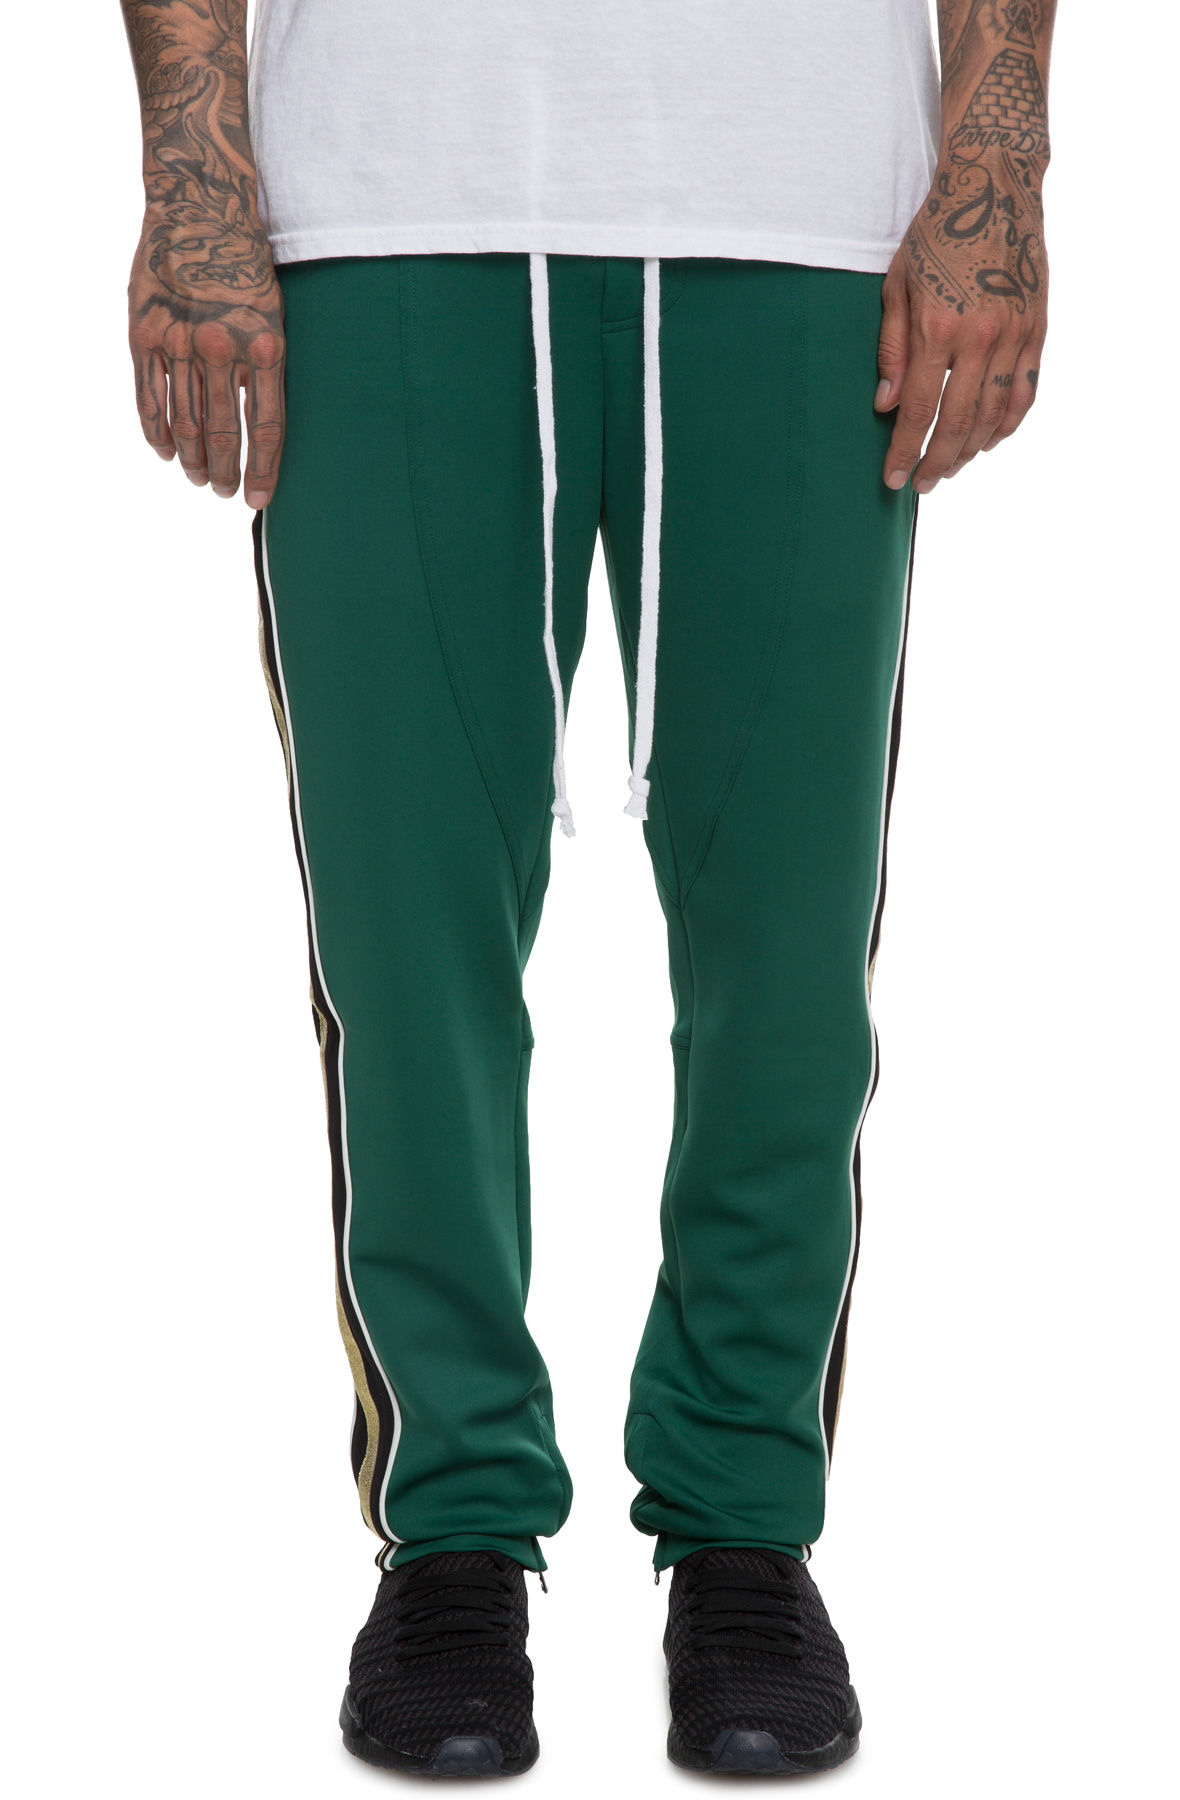 Image of The Jenner Track Pant in Forest Green and Gold